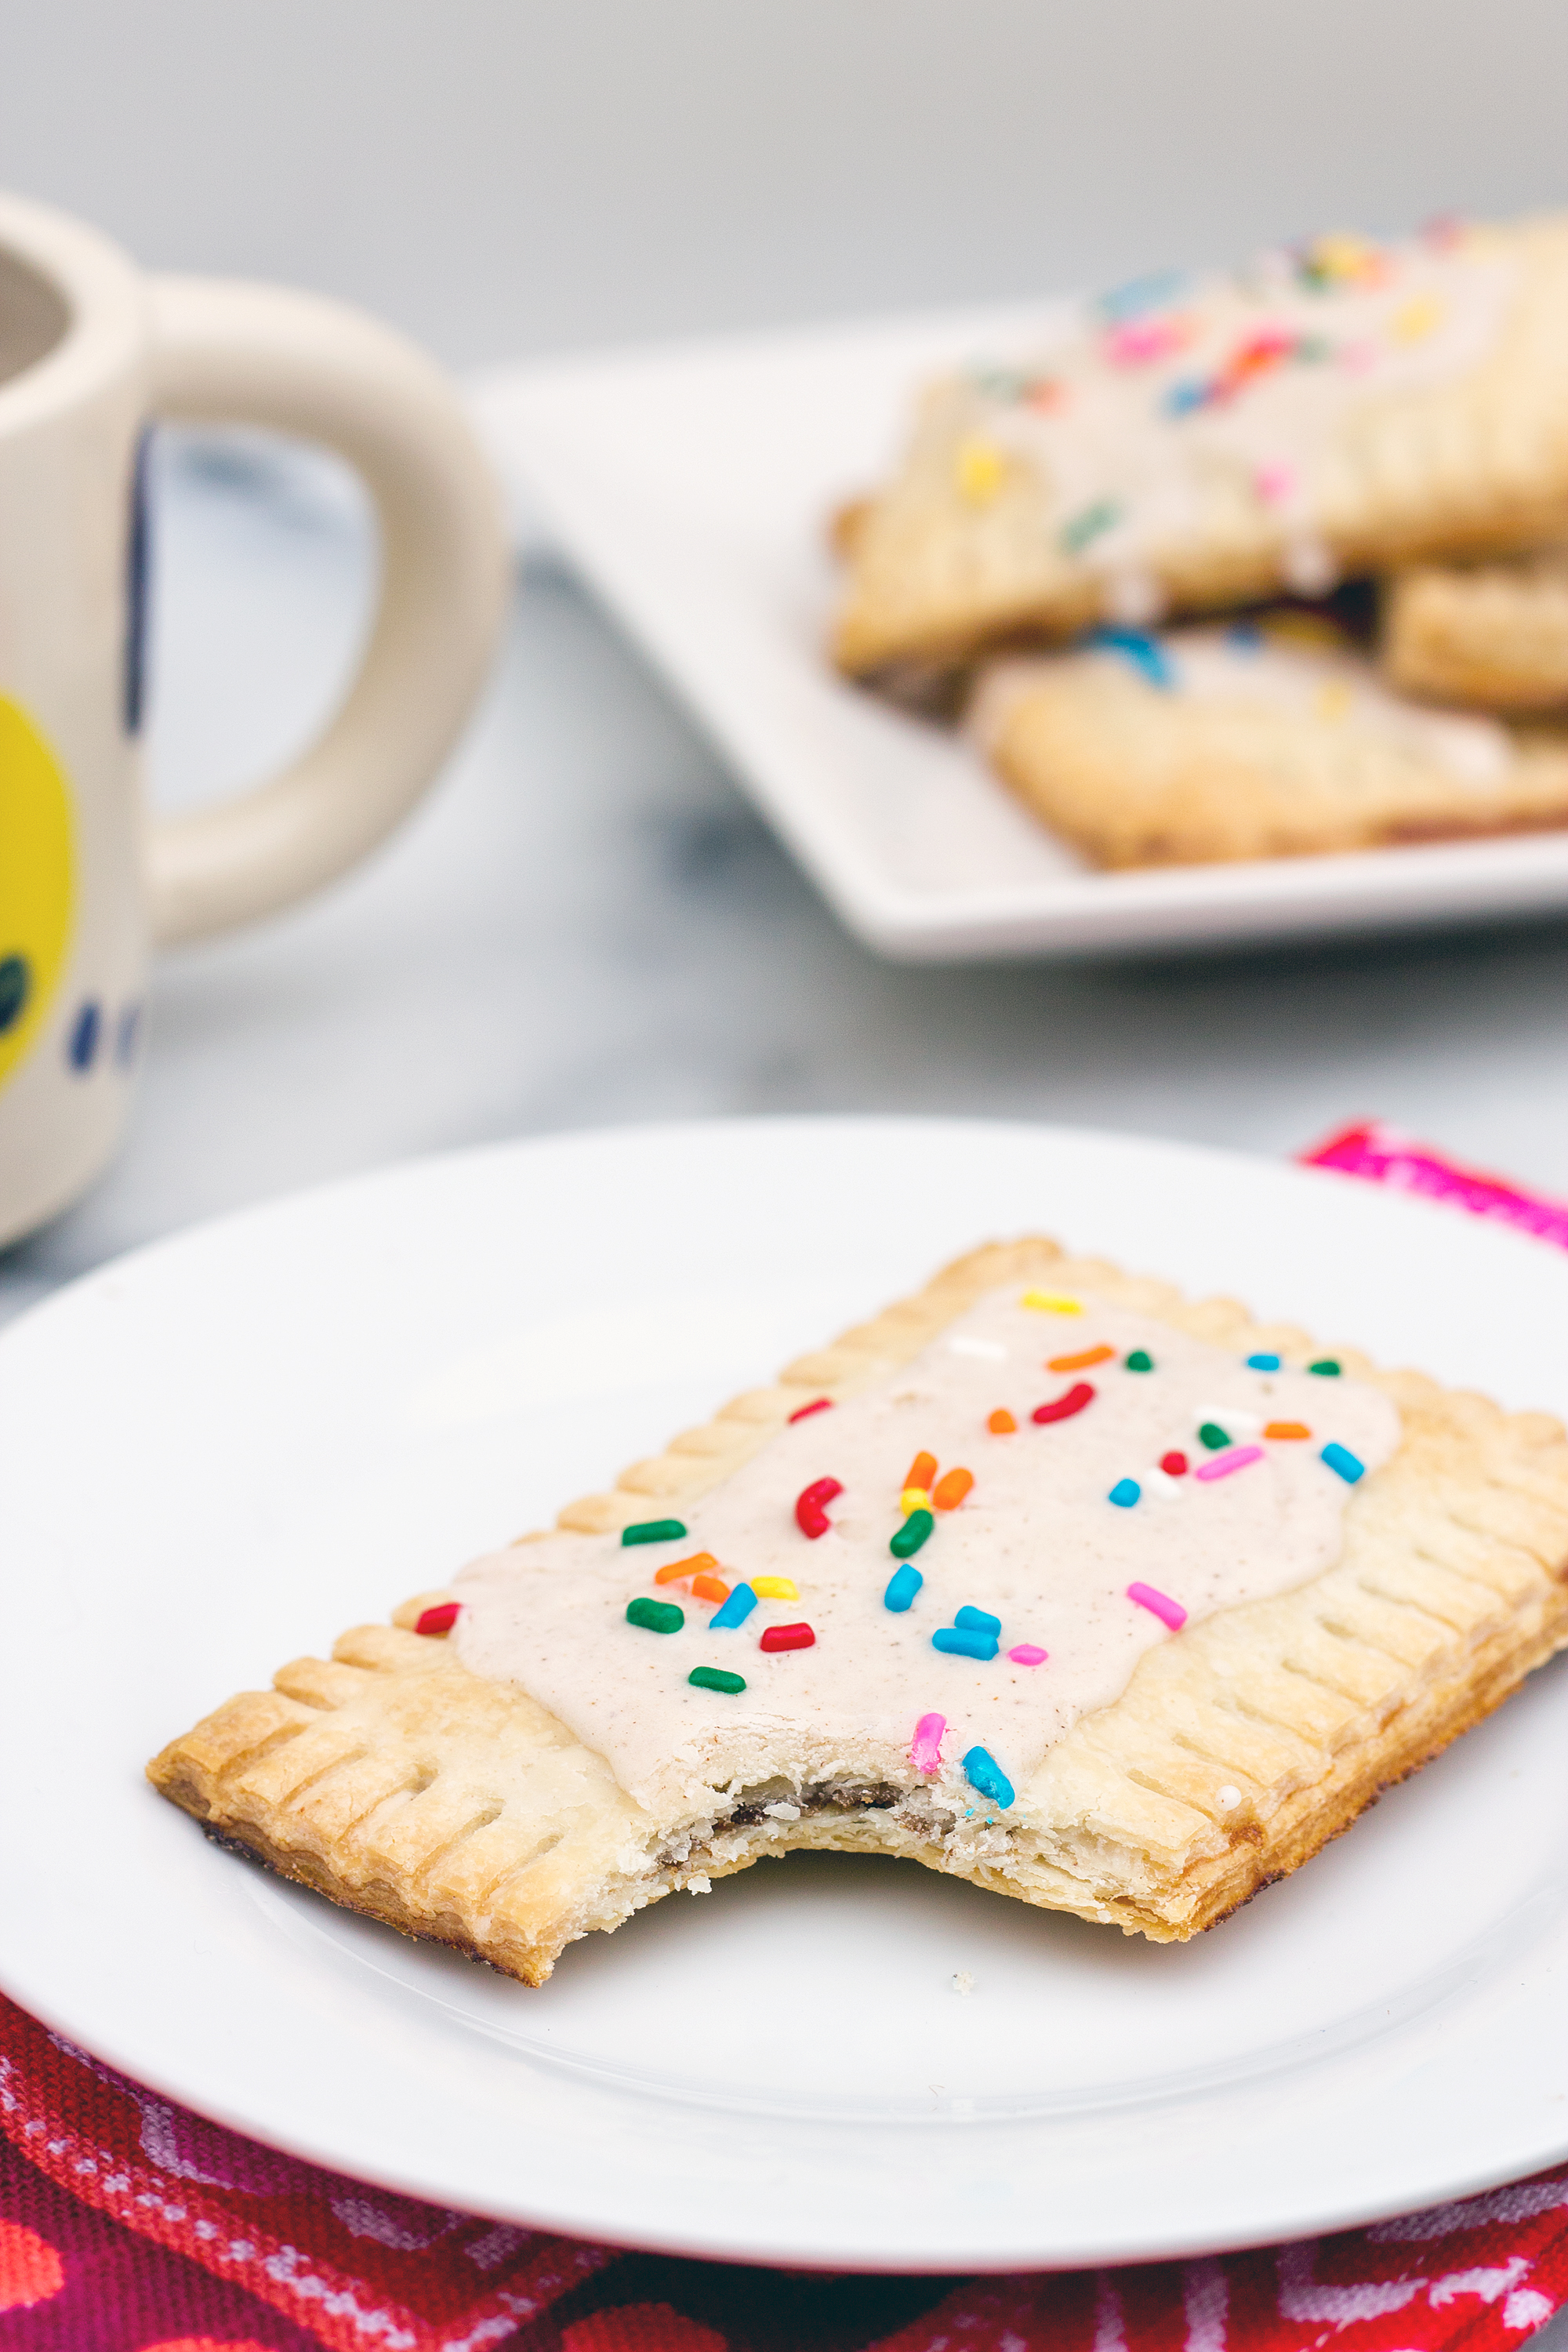 Recipe for Brown Sugar Cinnamon Poptarts from Unusually Lovely.